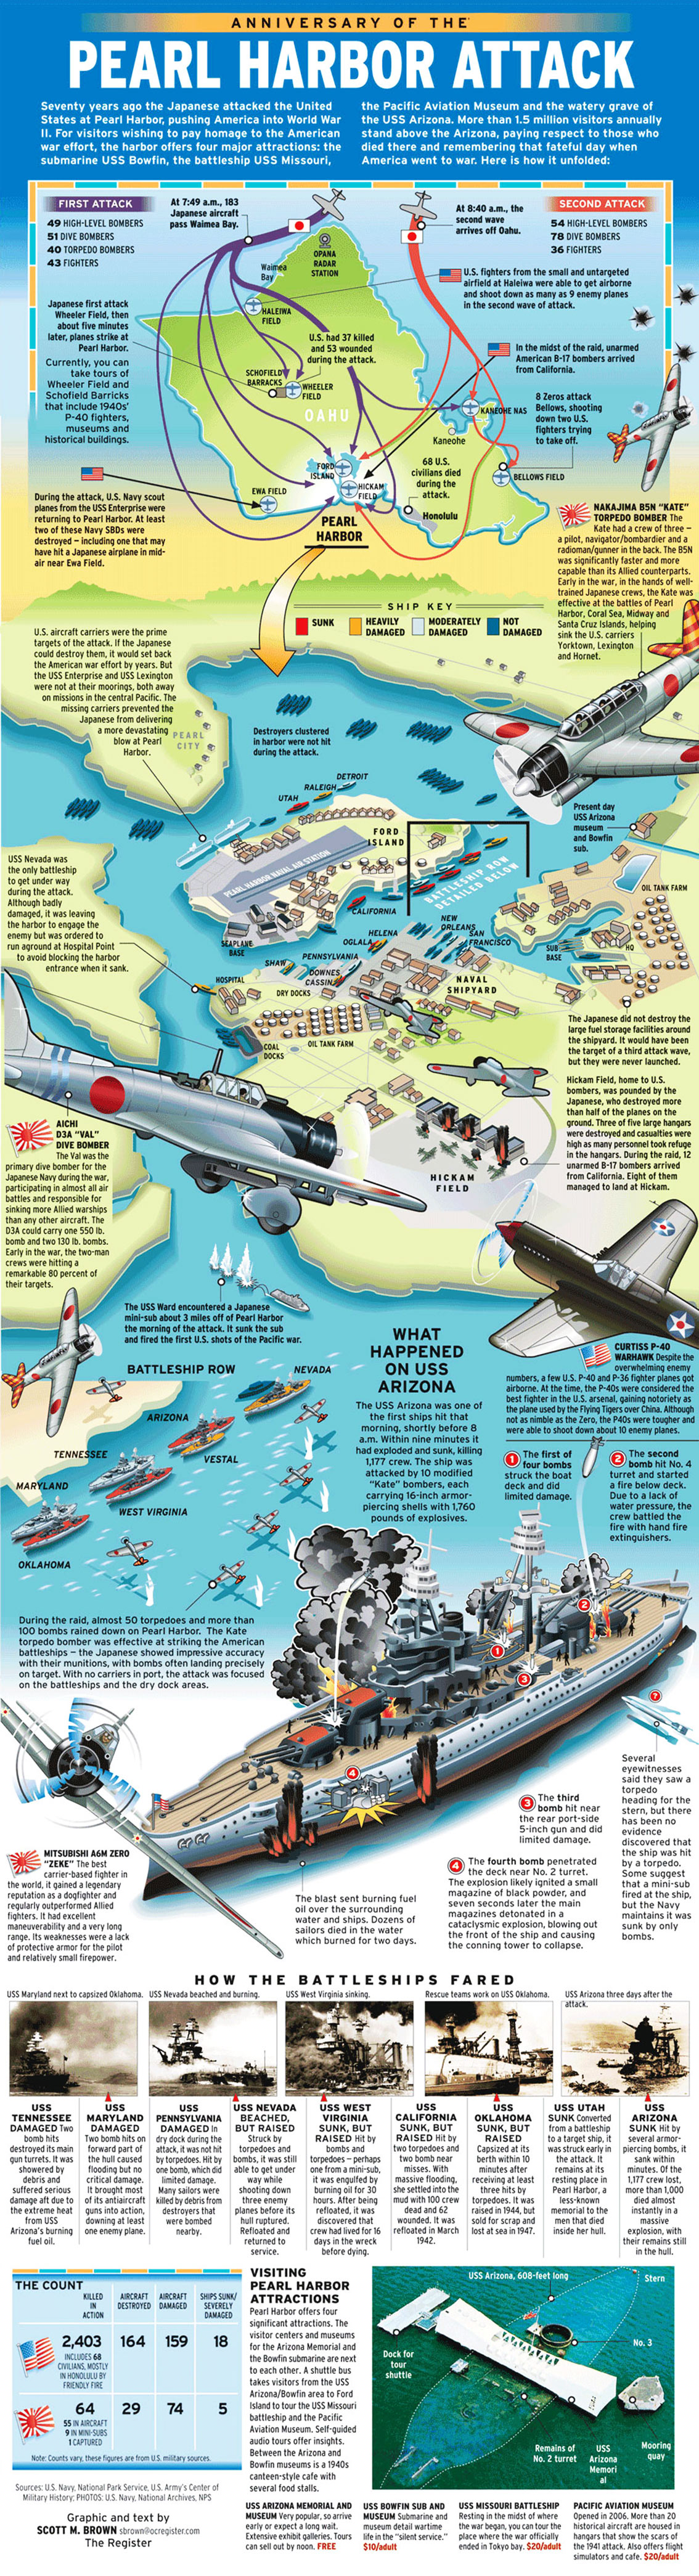 History of Pearl Harbor Attack of 1941 Infographic